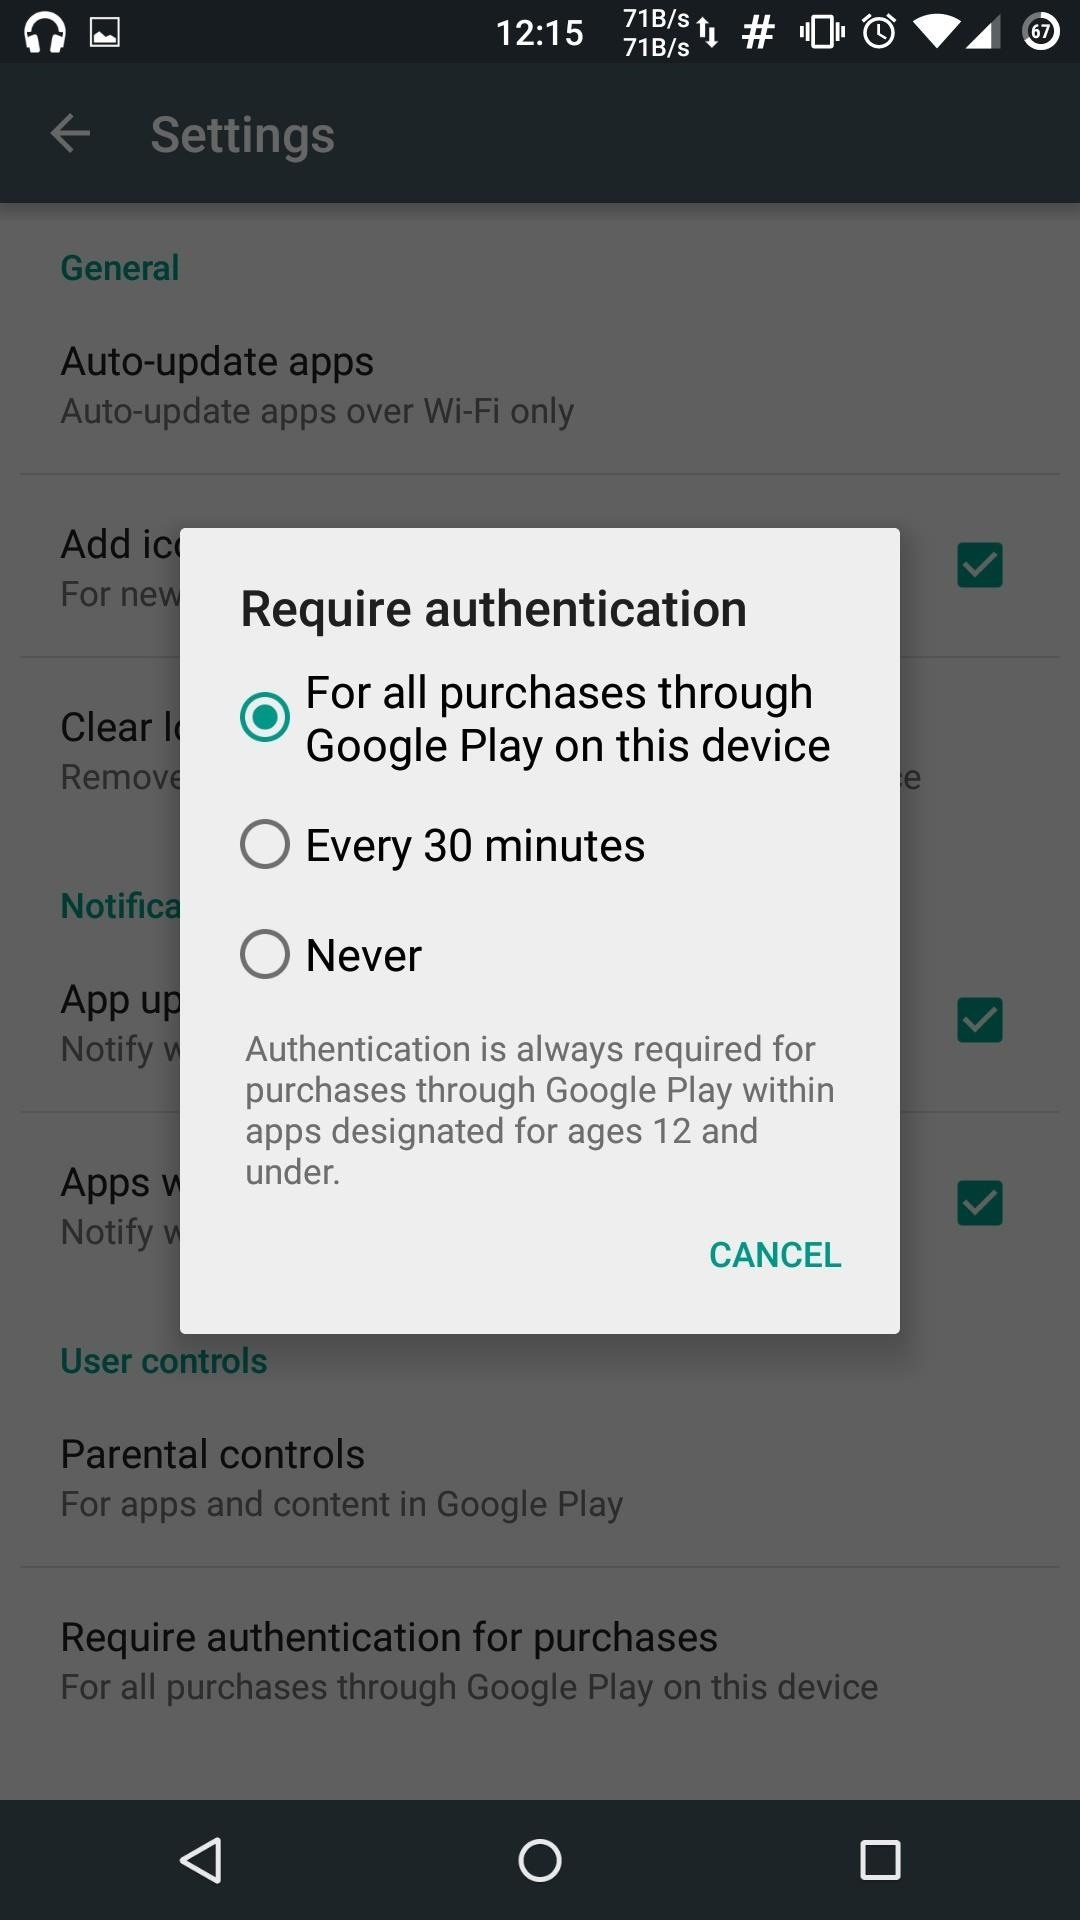 Android Parental Controls 101 Settings To Tweak On Your